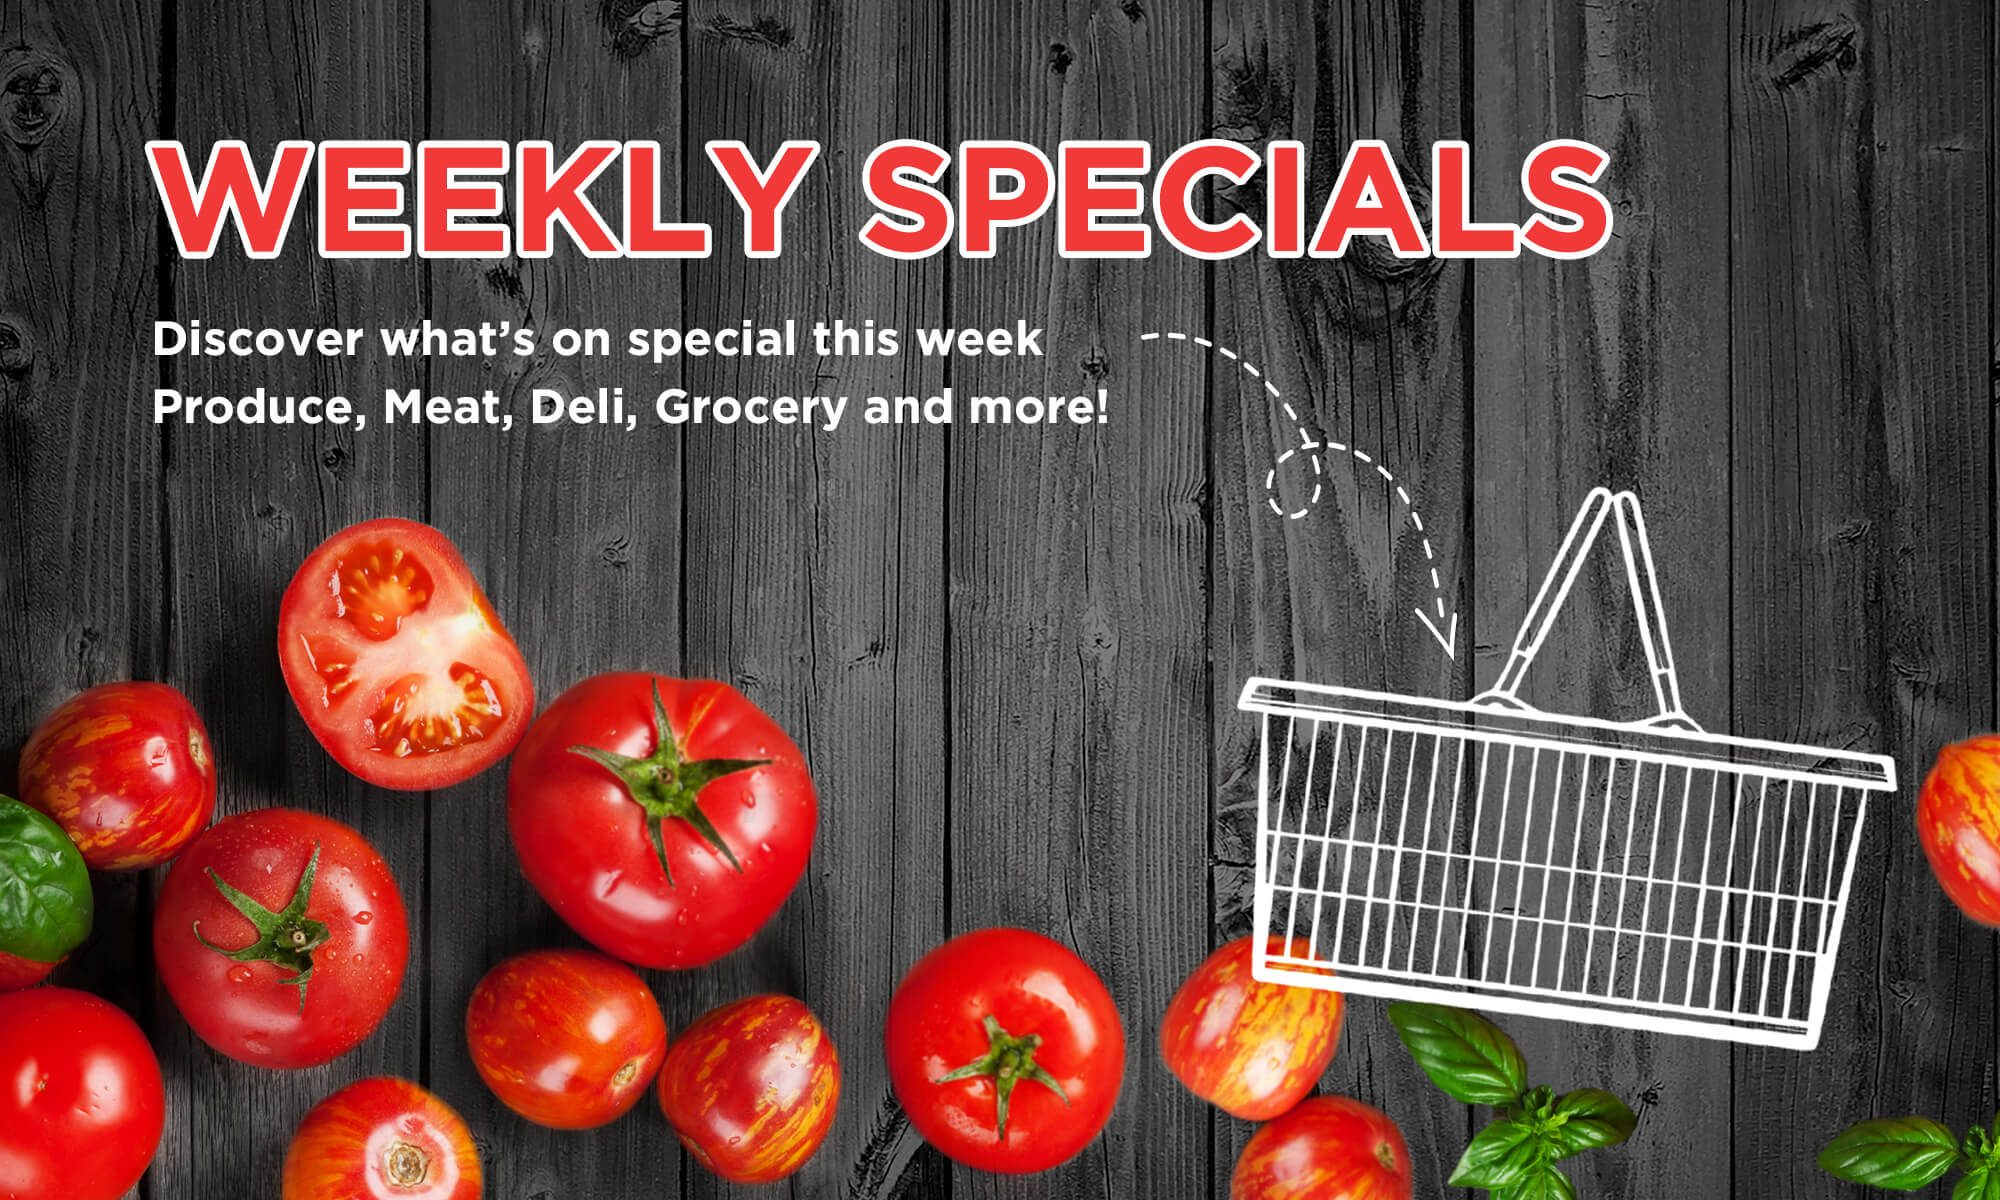 Weekly Flyer View our Weekly Flyer. Produce, Meat, Deli, Grocery and more!